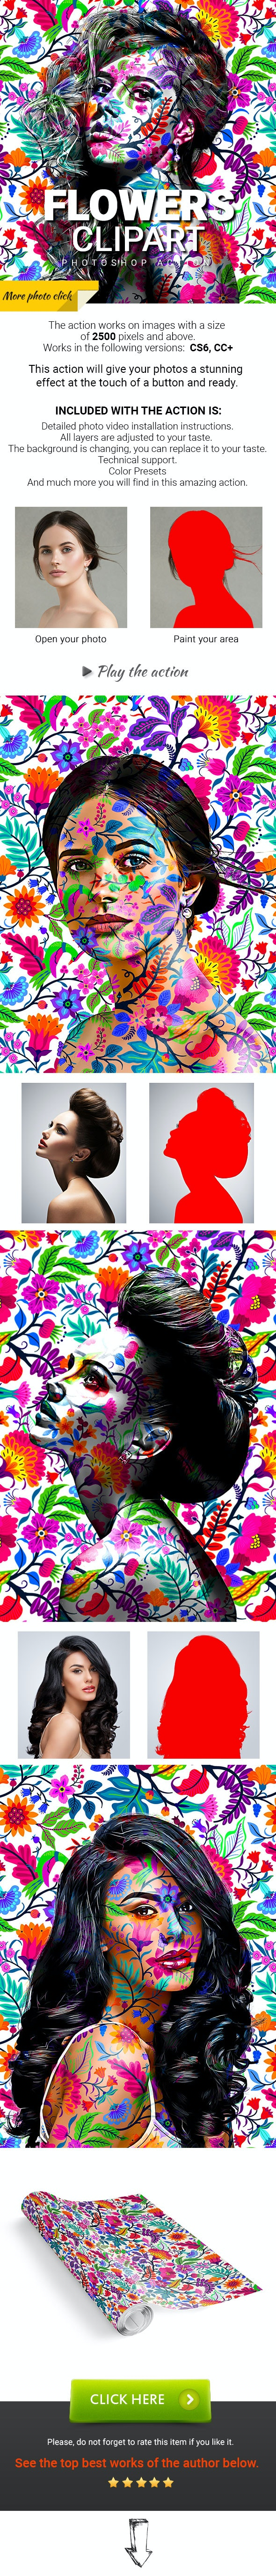 Flowers Clipart Photoshop Action - Photo Effects Actions